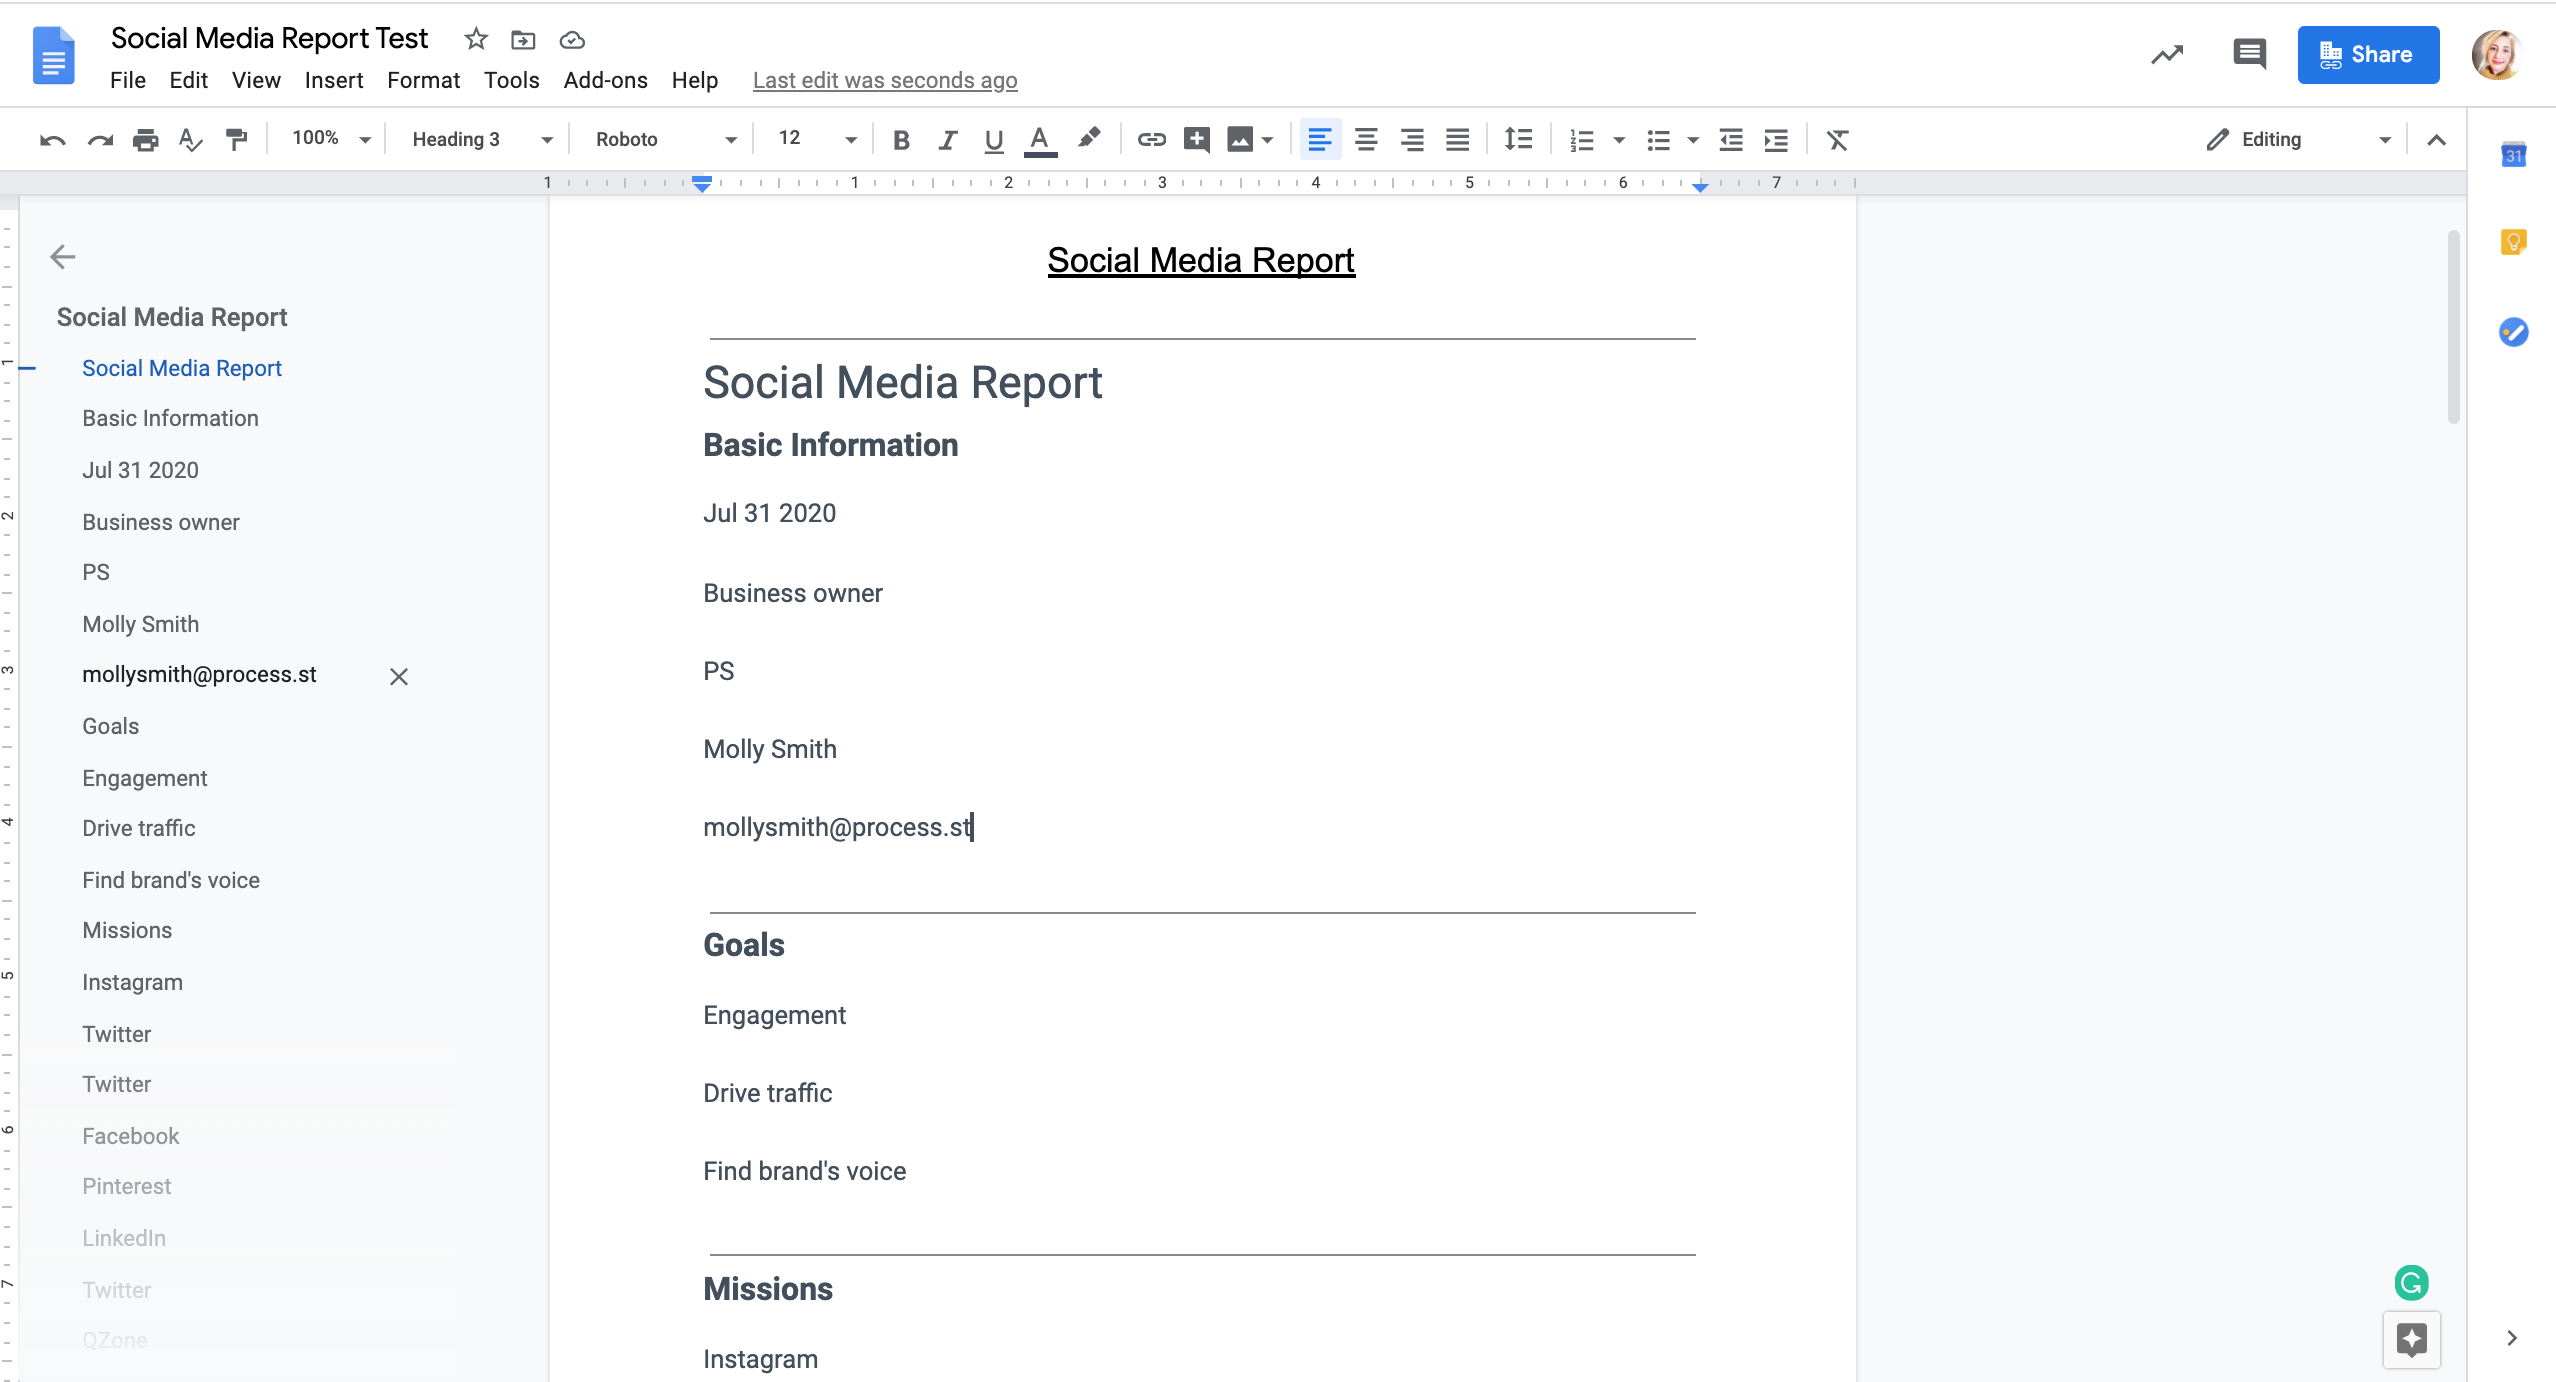 Your final report should come through to your google drive as a new document. The information in the google document report should match the information in your final report created in the Social Media Report Template.